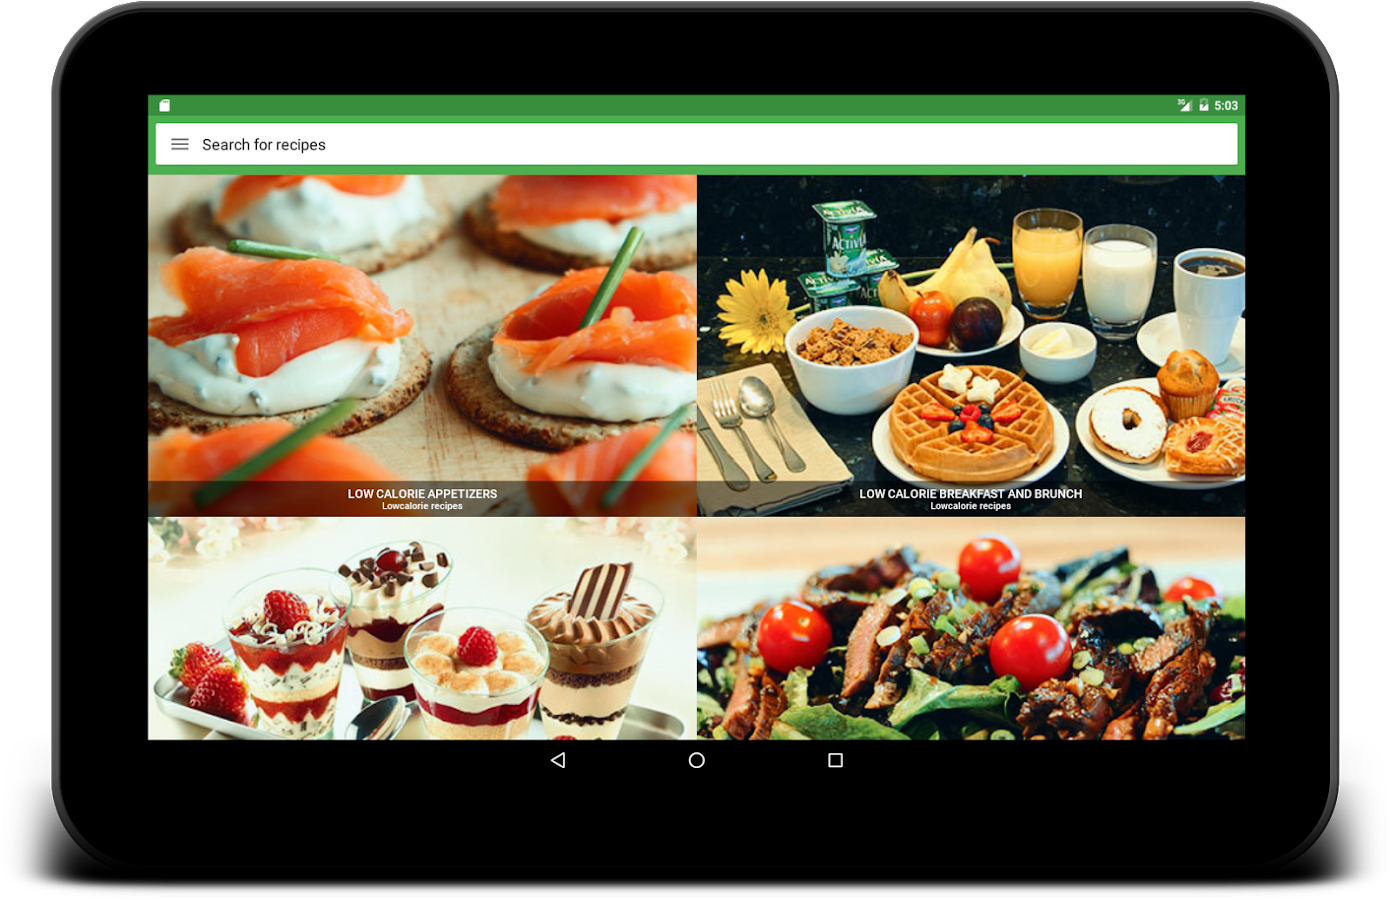 Low Calorie Recipes - Android Apps on Google Play